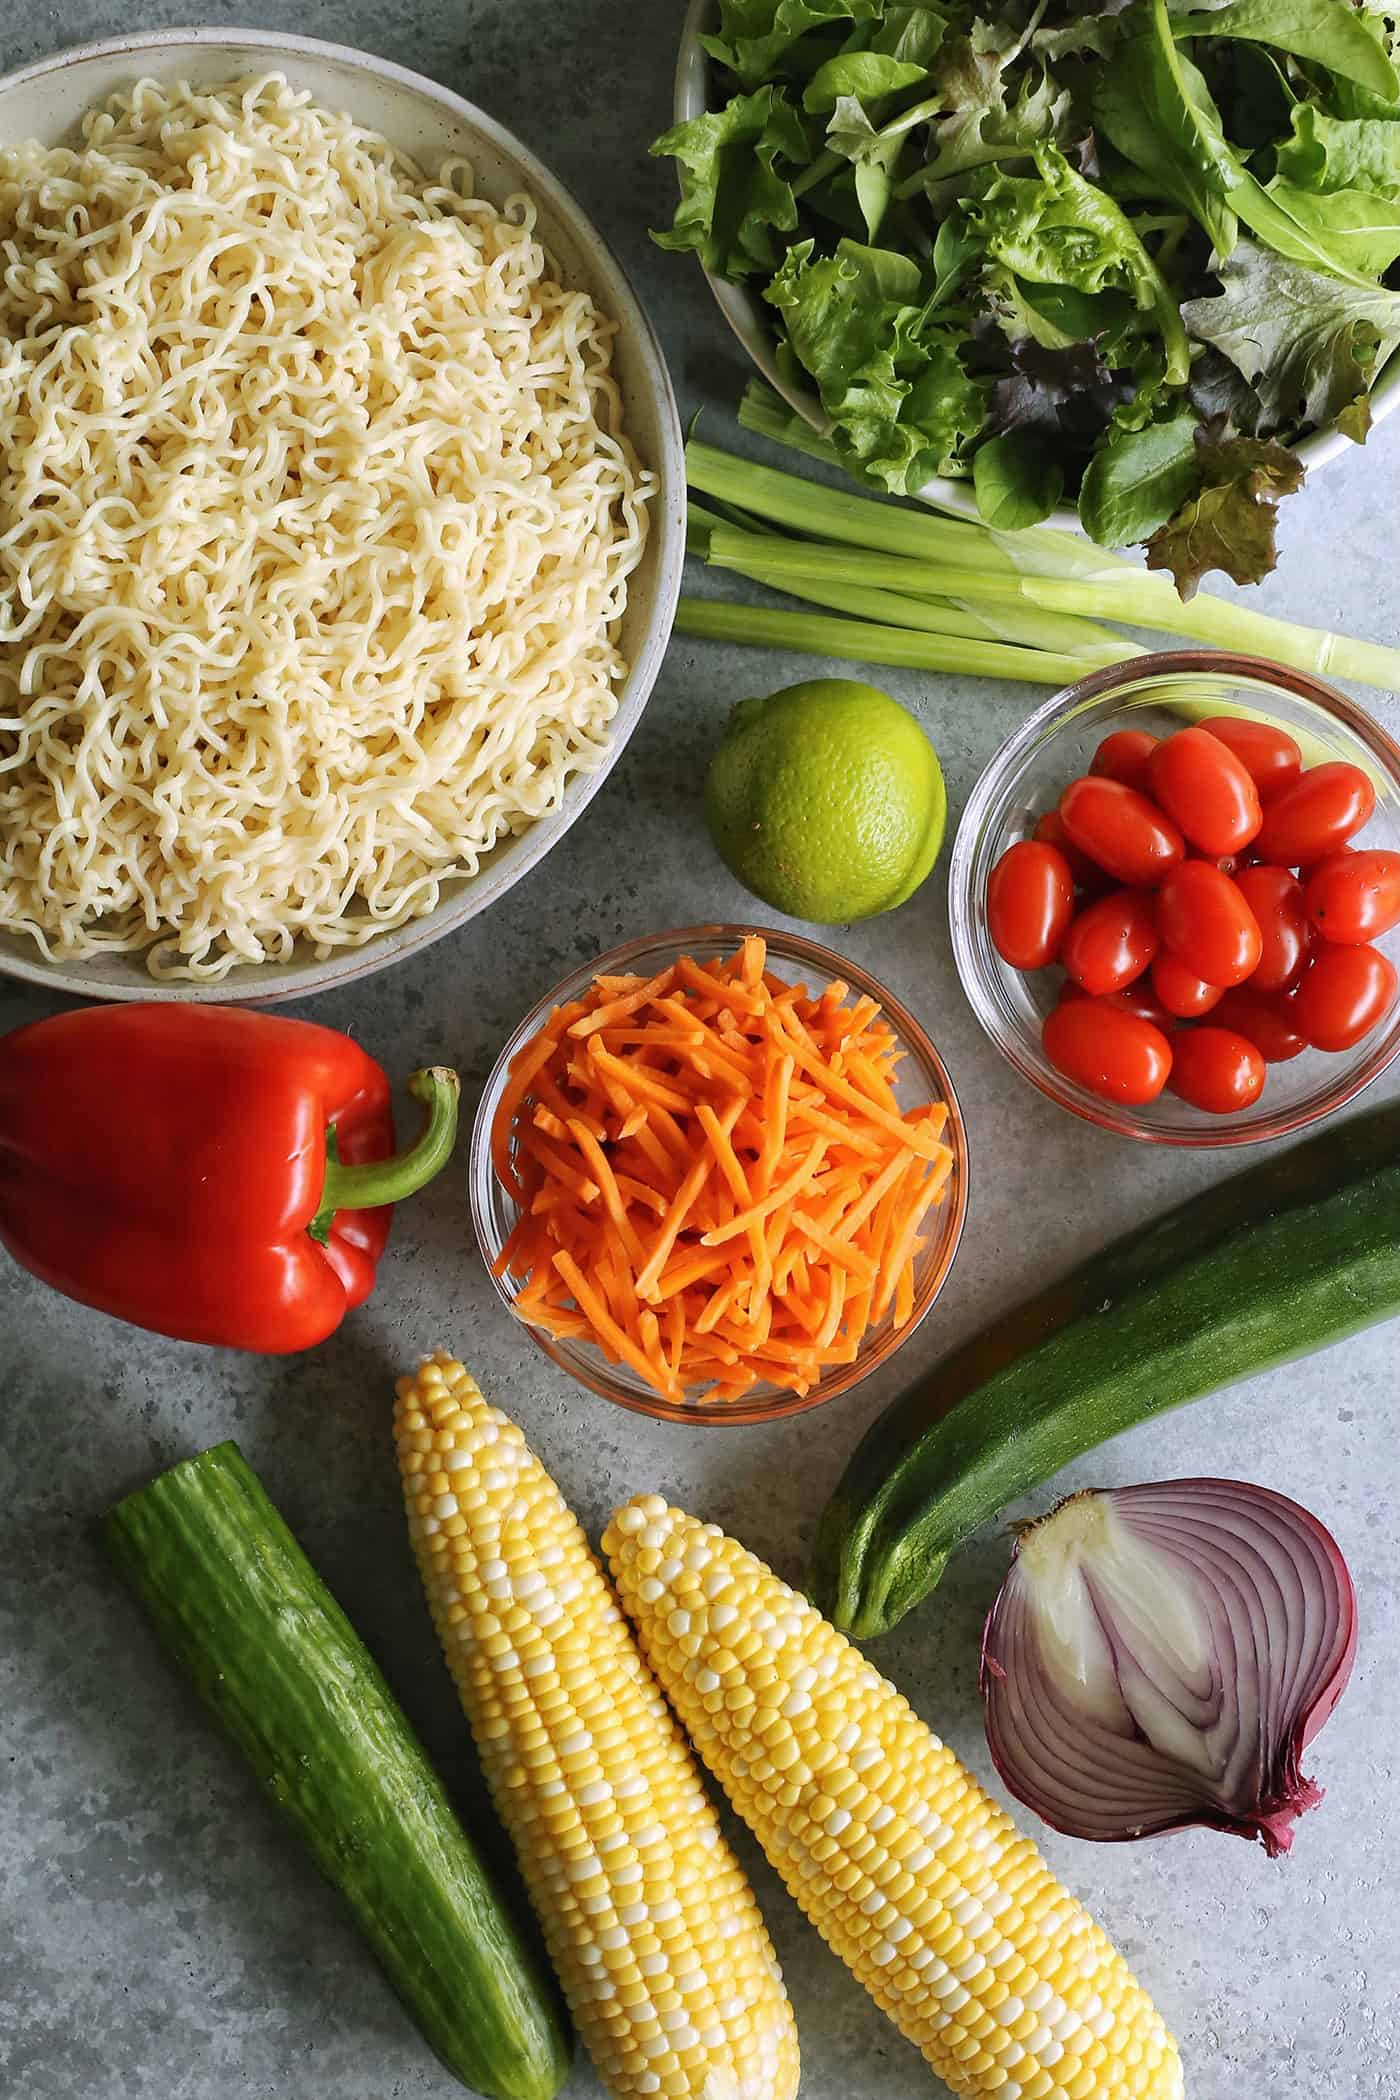 a bowl of cooked ramen noodles, plus fresh lettuce, green onion, red onion, tomatoes, lime, carrots, zucchini, sweetcorn, cucumber, and red pepper